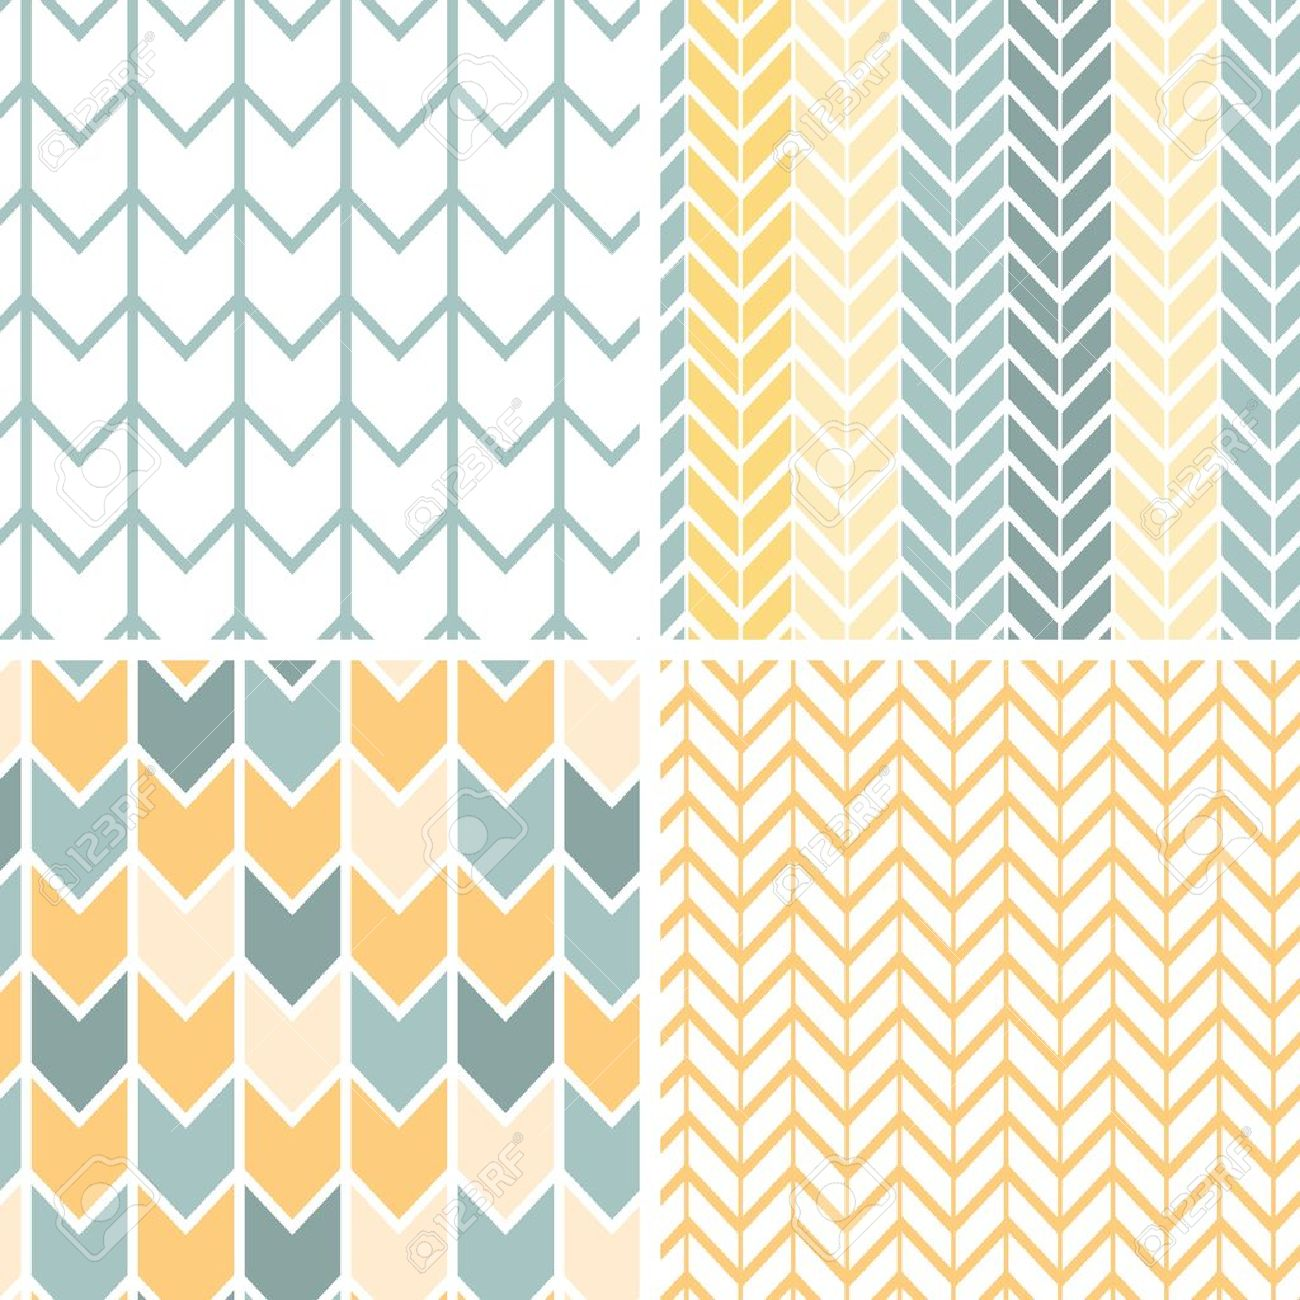 Set of four gray yellow chevron patterns and backgrounds Stock Vector - 19935277